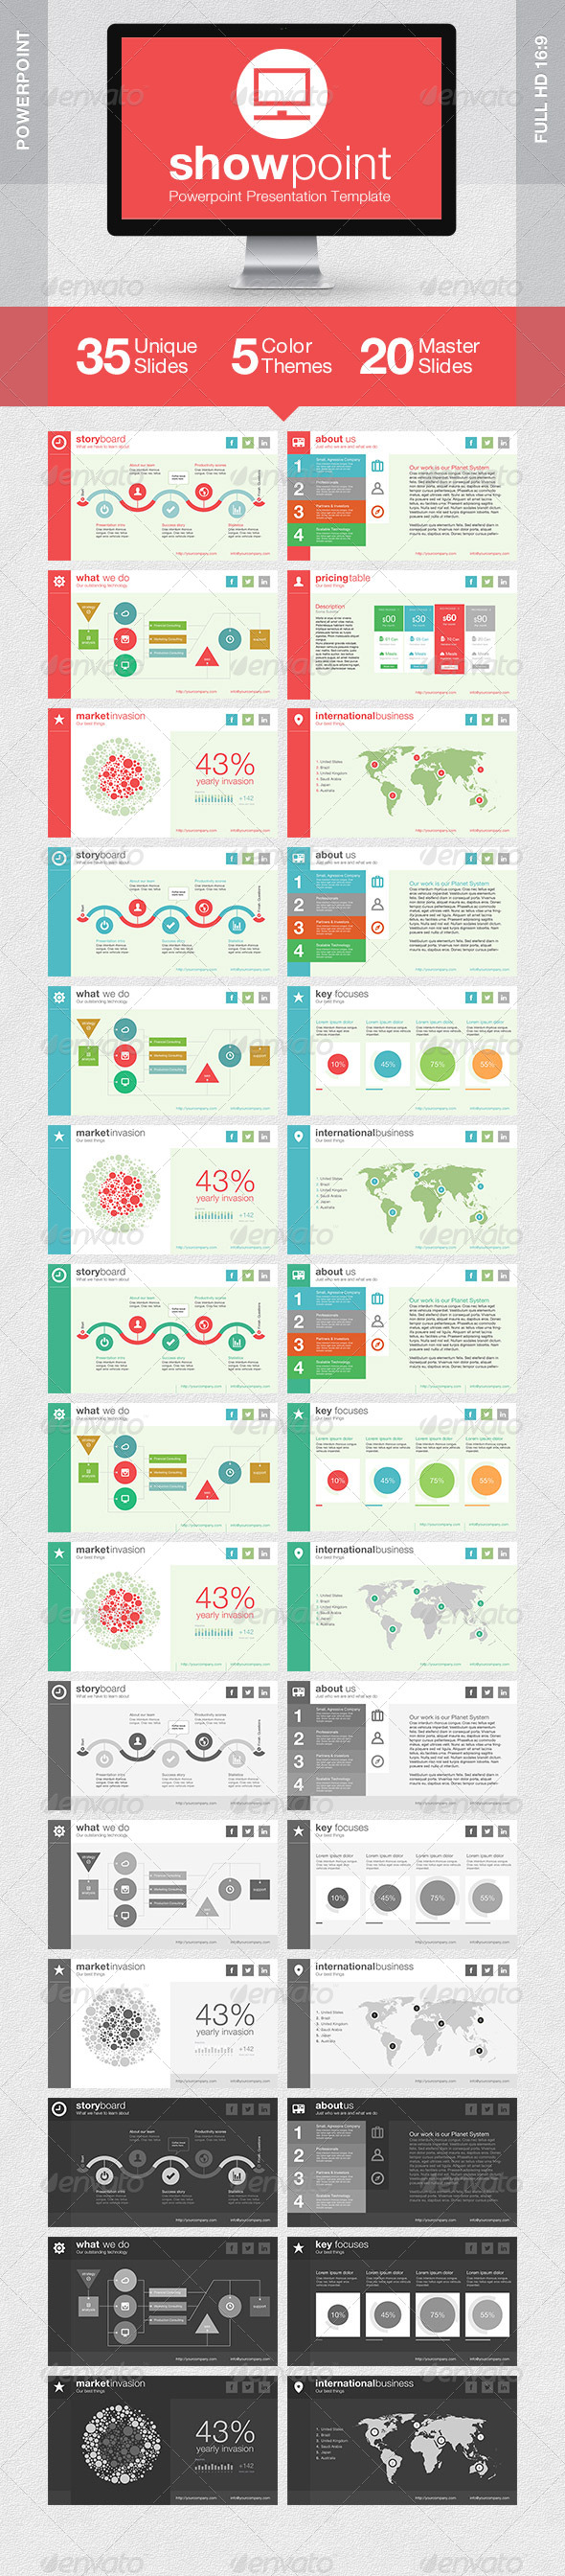 GraphicRiver ShowPoint Powerpoint Presentation Template 5512031